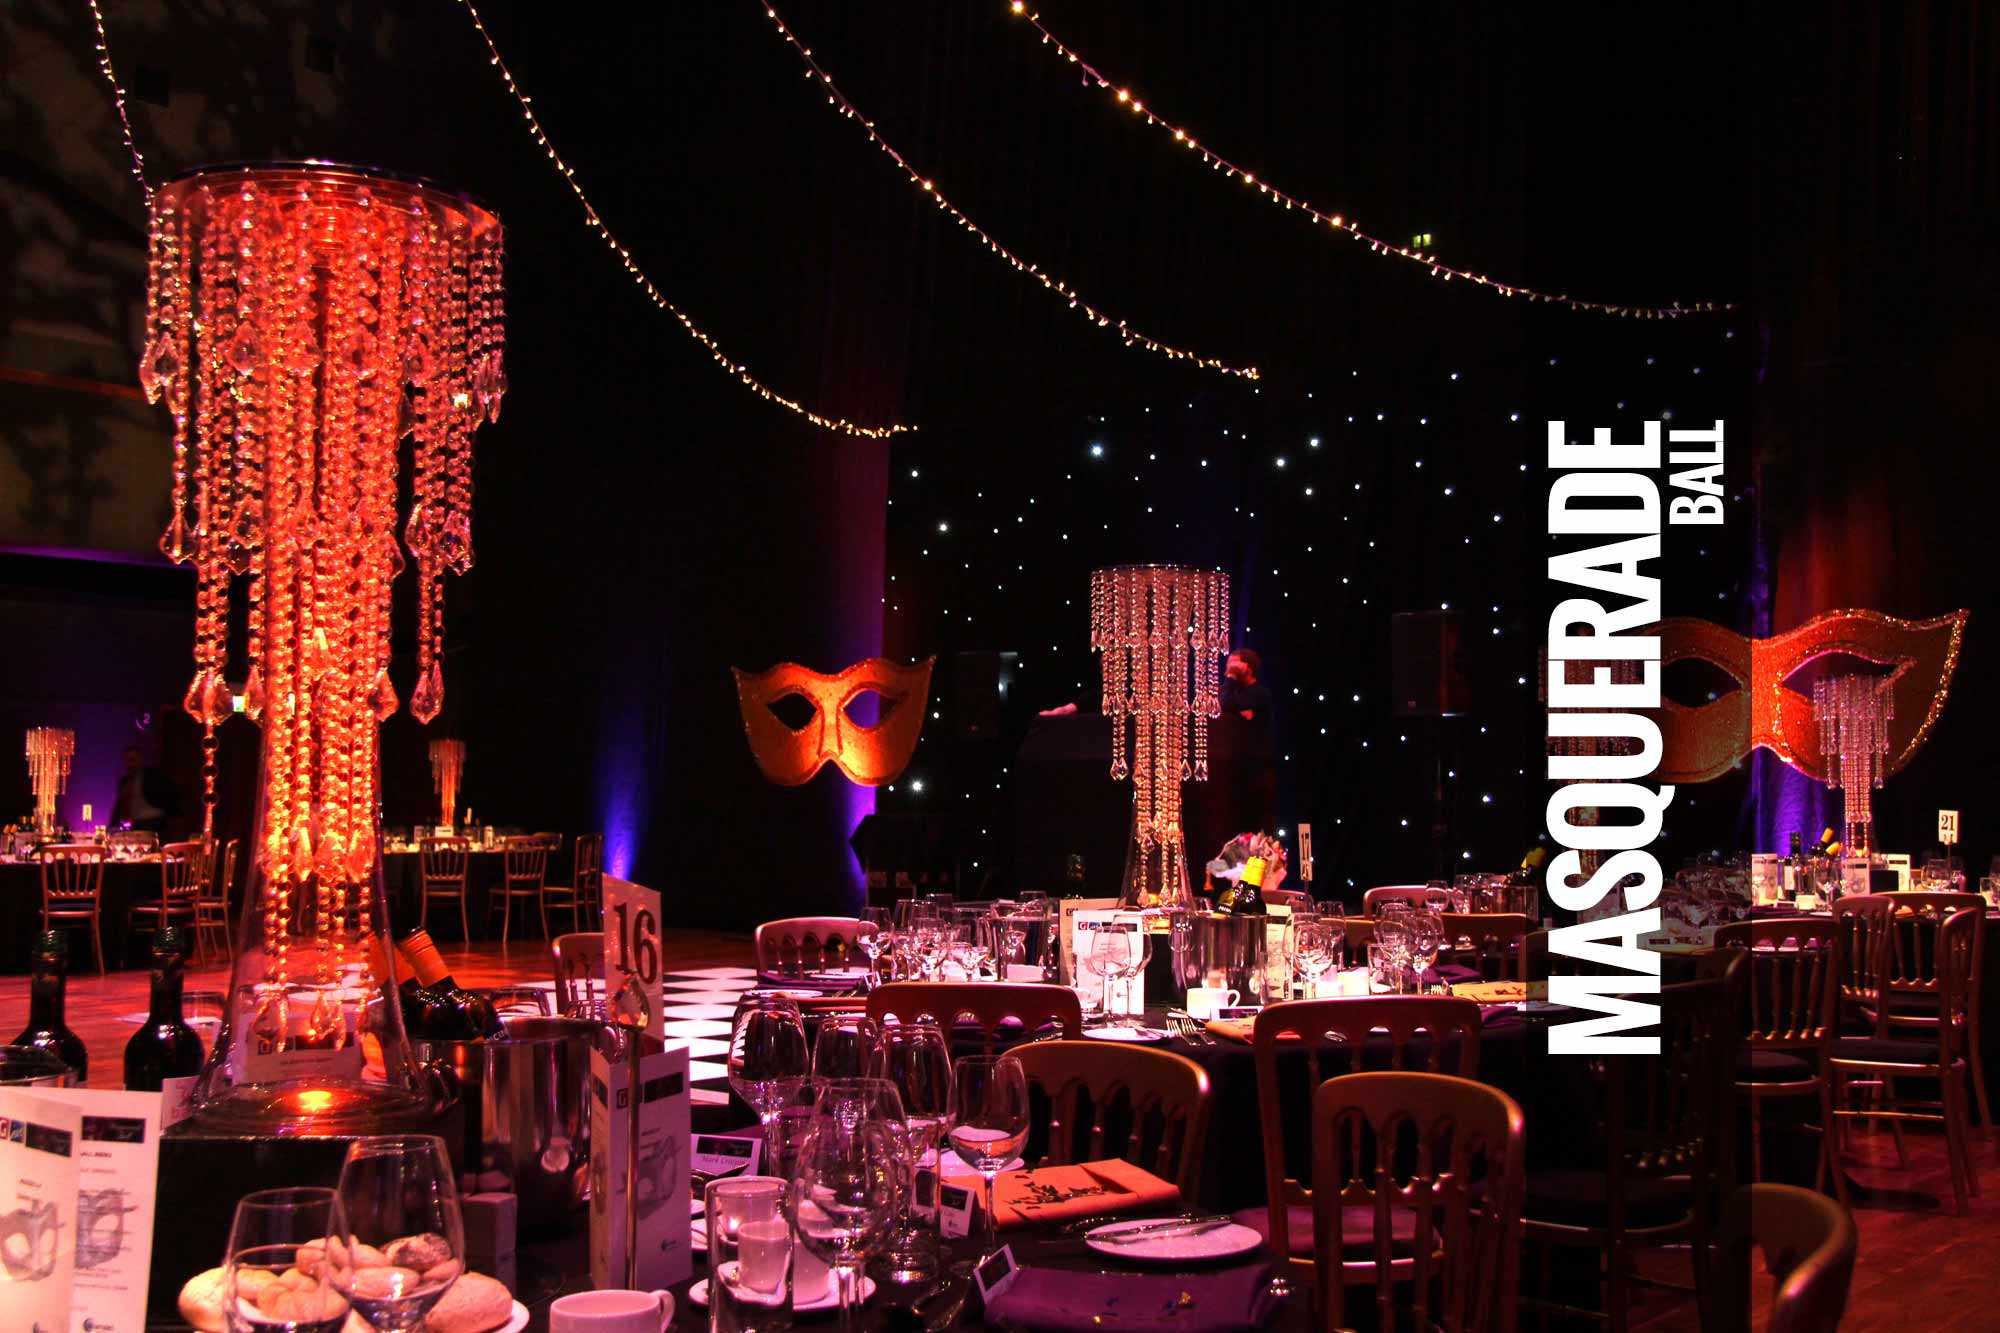 Masquerade Ball Themed Events